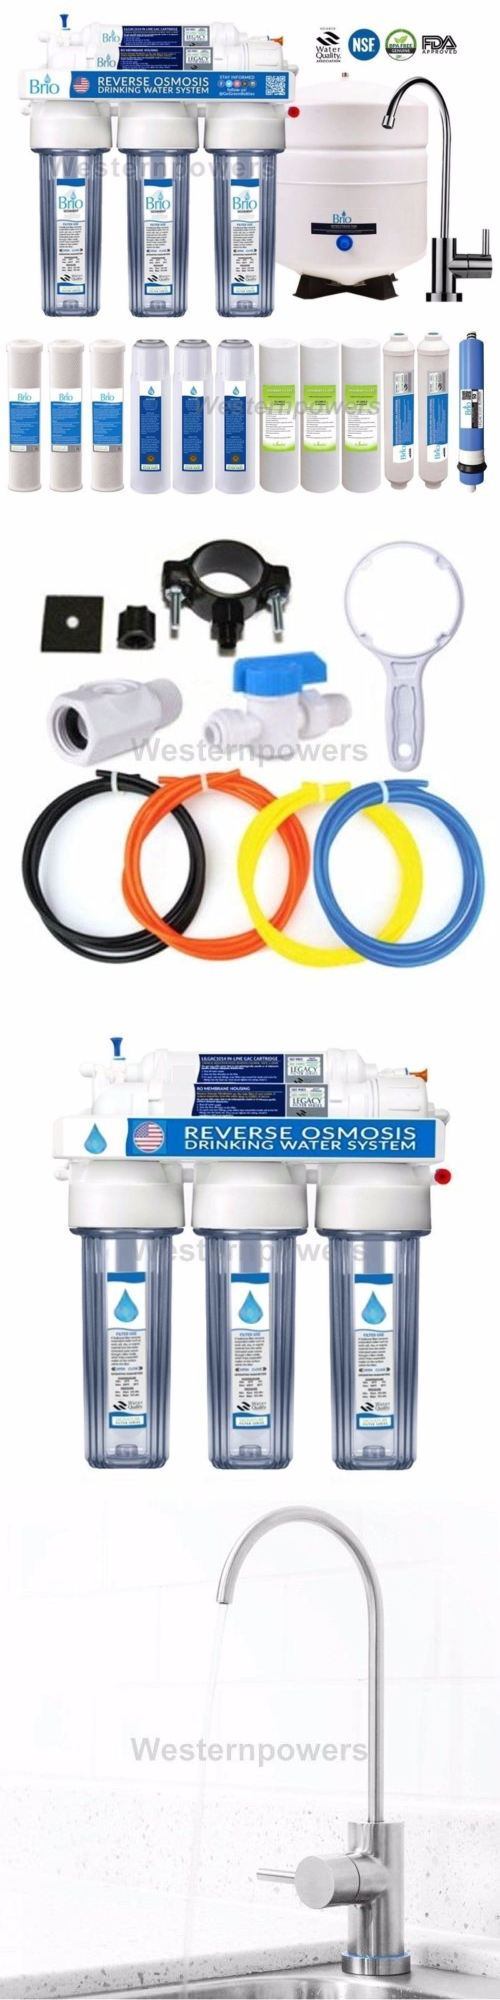 Home Ro Water Systems Water Filters 20684 5 Stage Home Drinking Reverse Osmosis Water